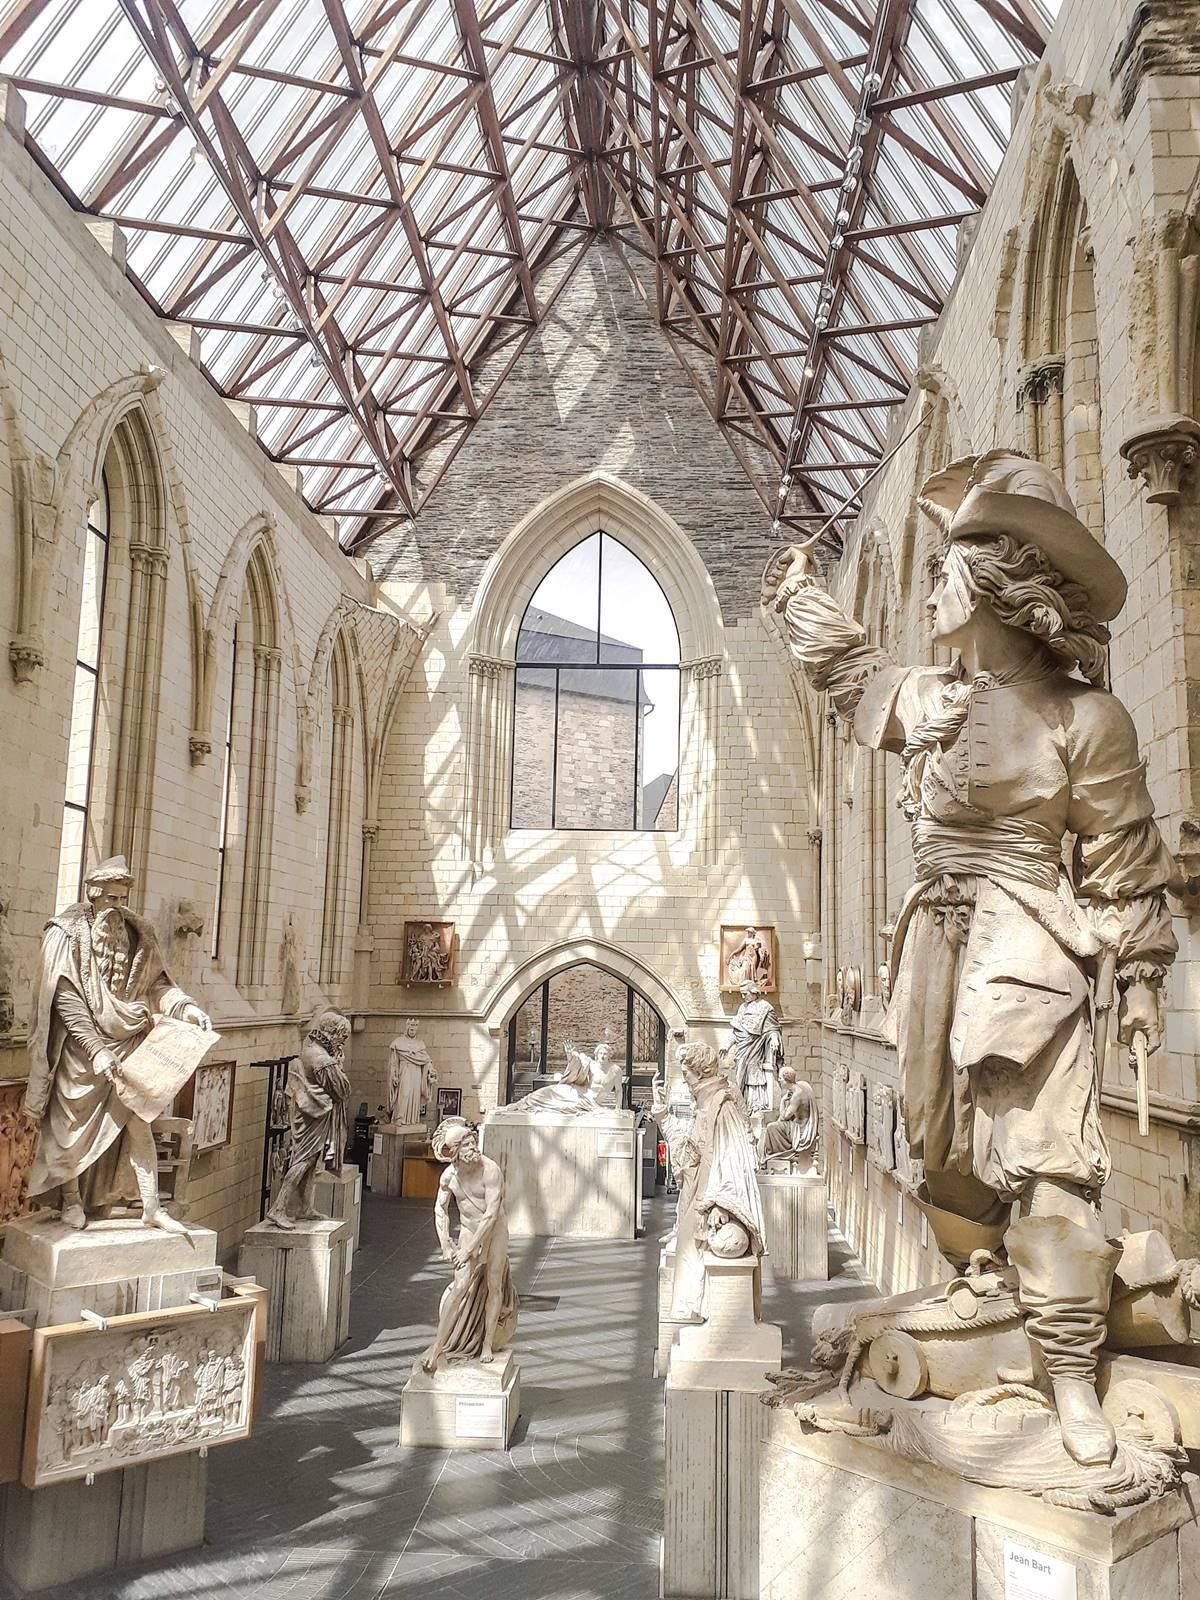 On a visite le musee david d angers a angerspsx 20210724 161909